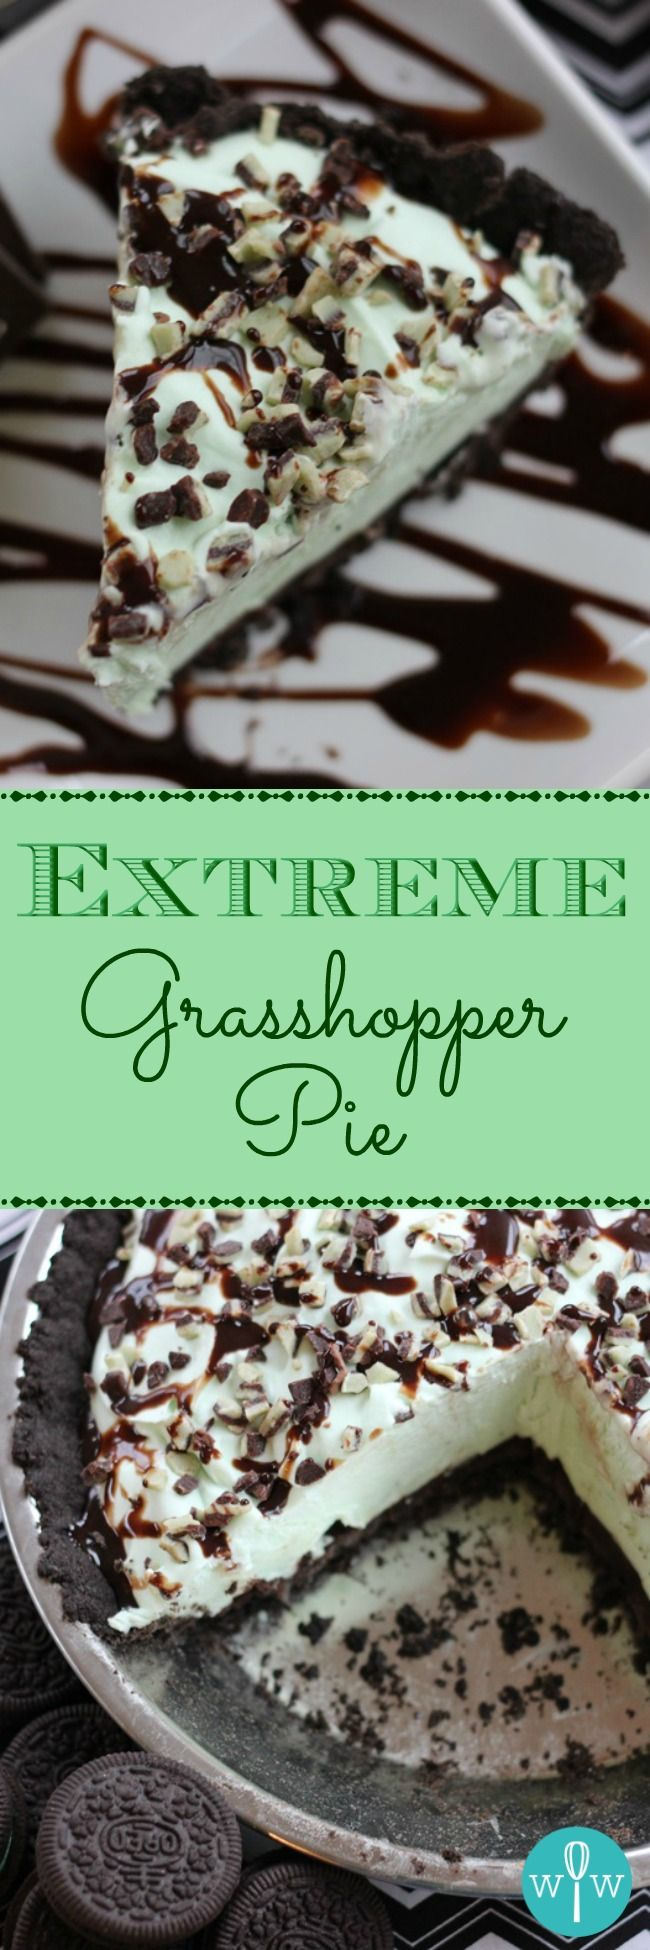 Extreme Grasshopper Pie - A great holiday or anytime frozen dessert recipe! A chocolate cookie crust topped with mint chocolate ganache, a fluffy creme de menthe filling and chocolates. | www.worthwhisking.com